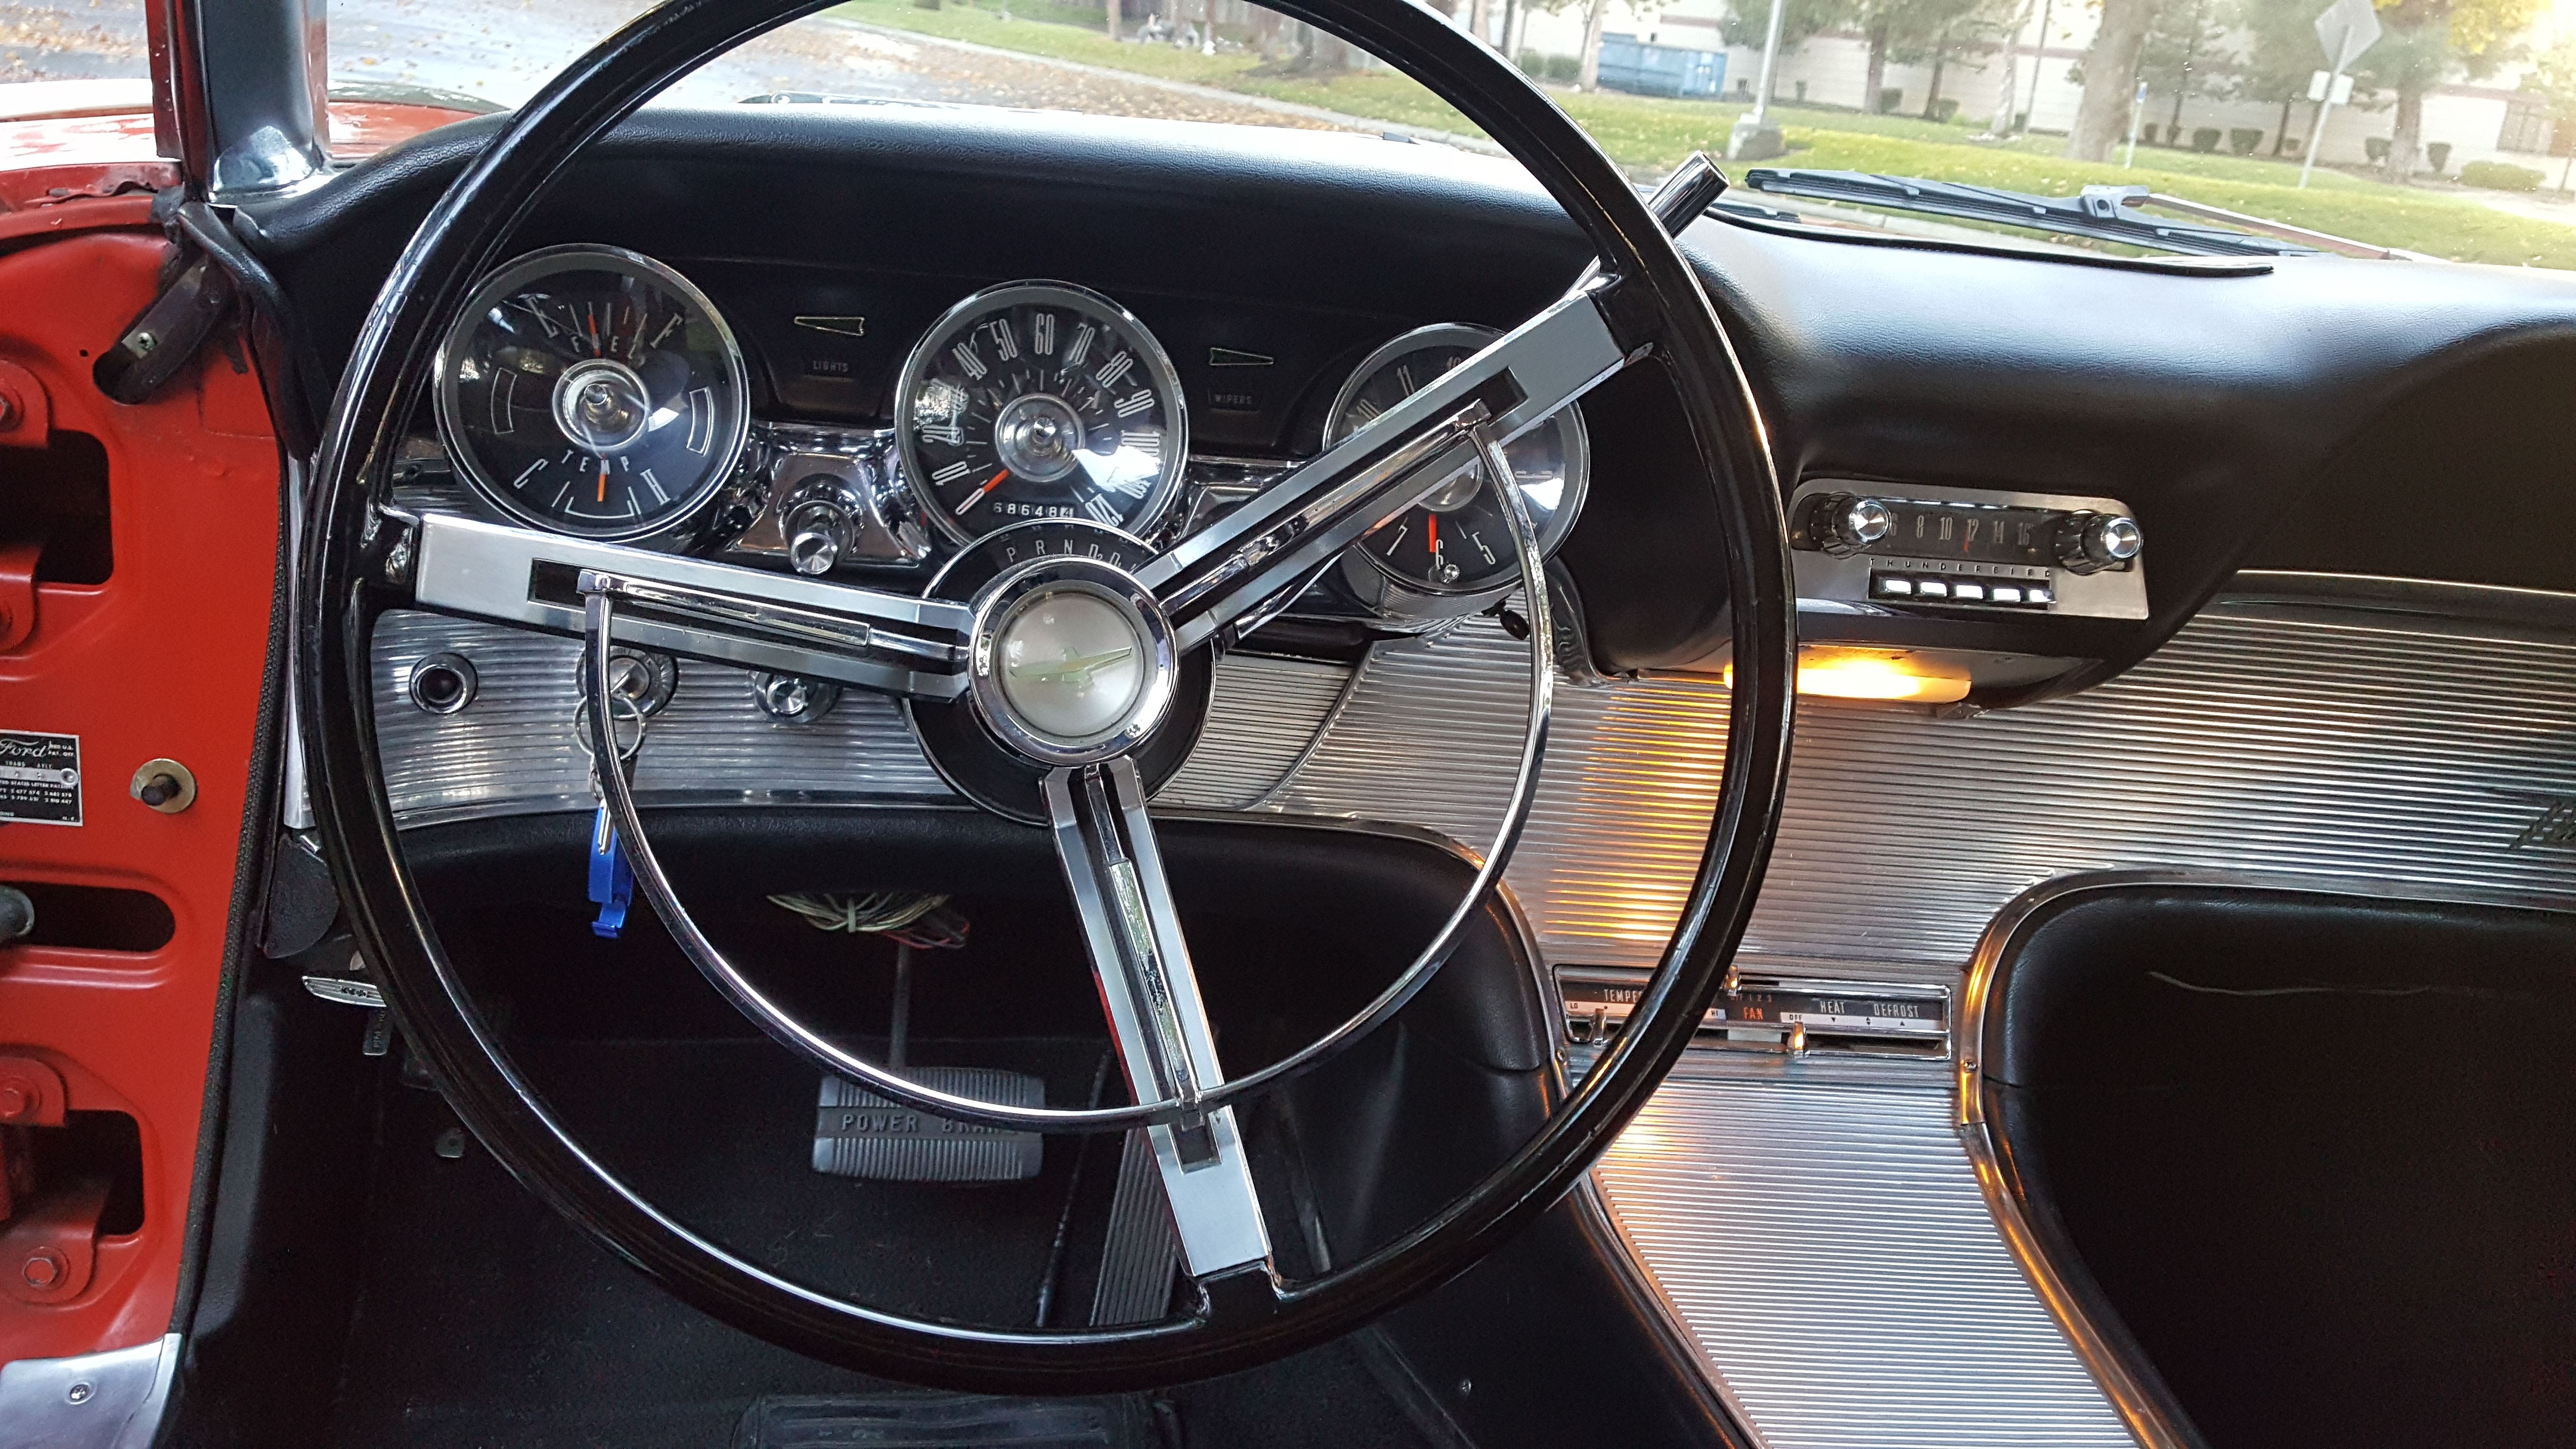 1961 Ford Thunderbird Sold Southern Cross Us Importers O Matic Automatic Transmission Power Steering Brakes And A 2 Door Coupe